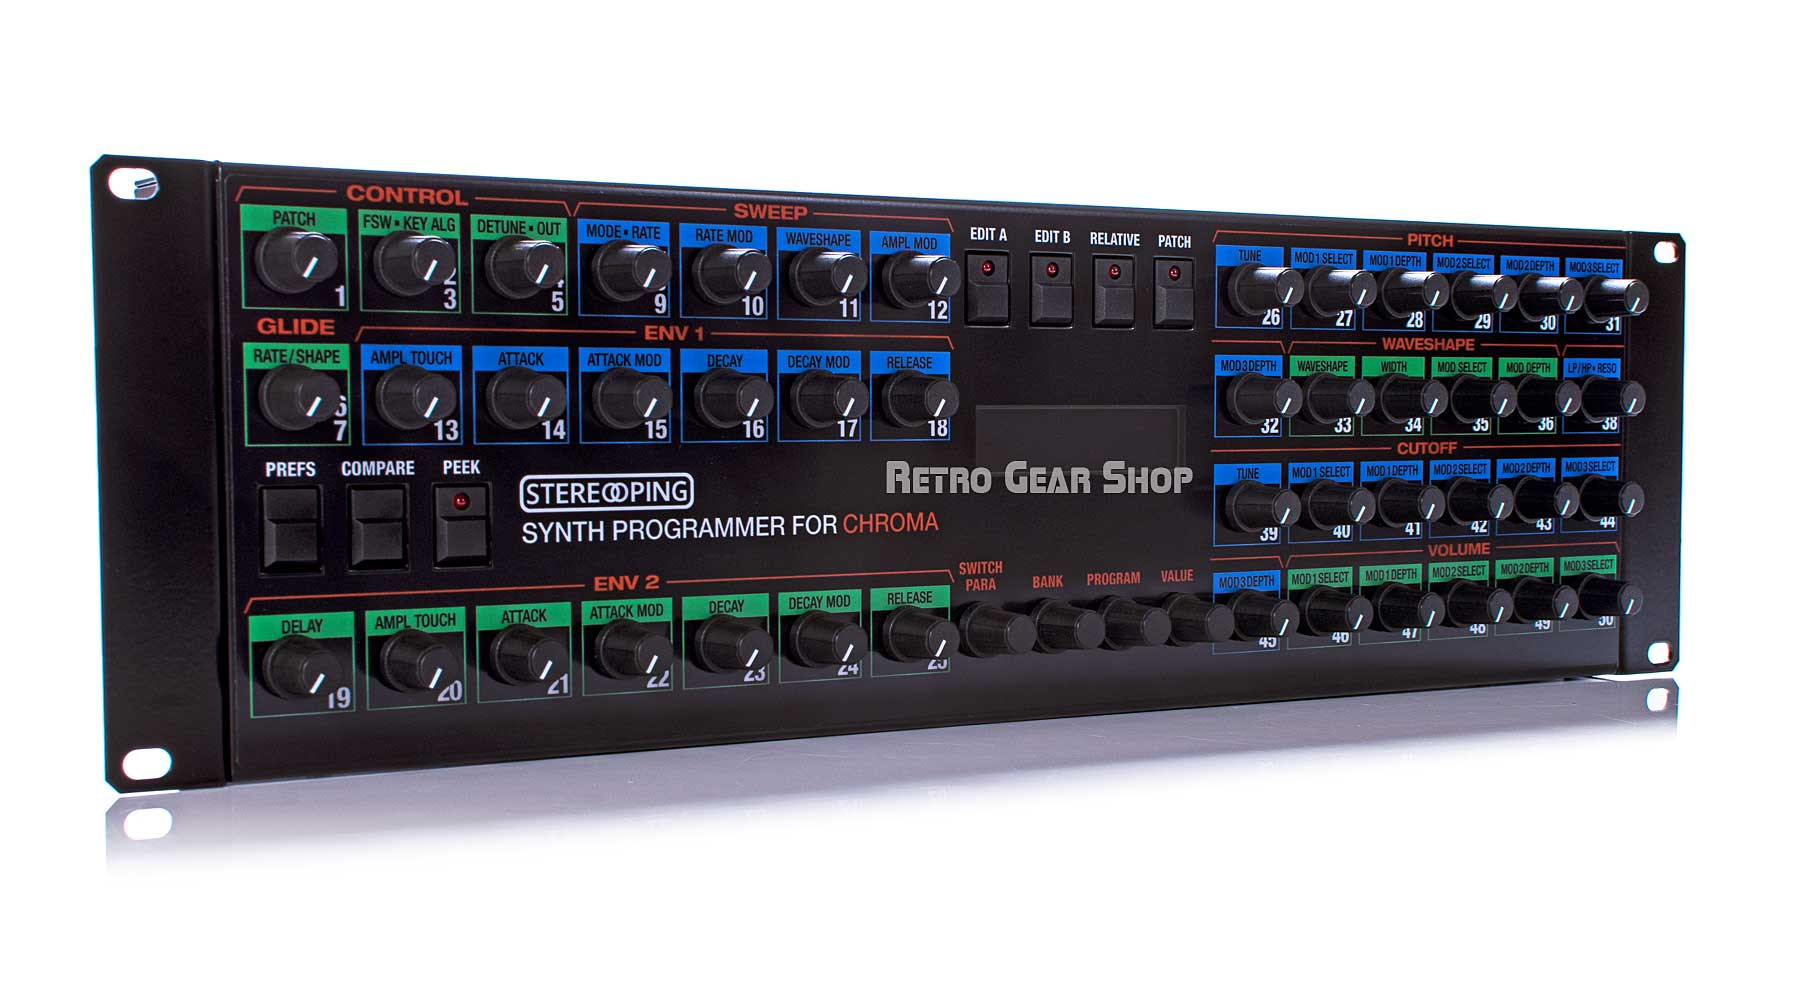 Stereoping Programmer Rhodes Chroma Rare Midi Controller